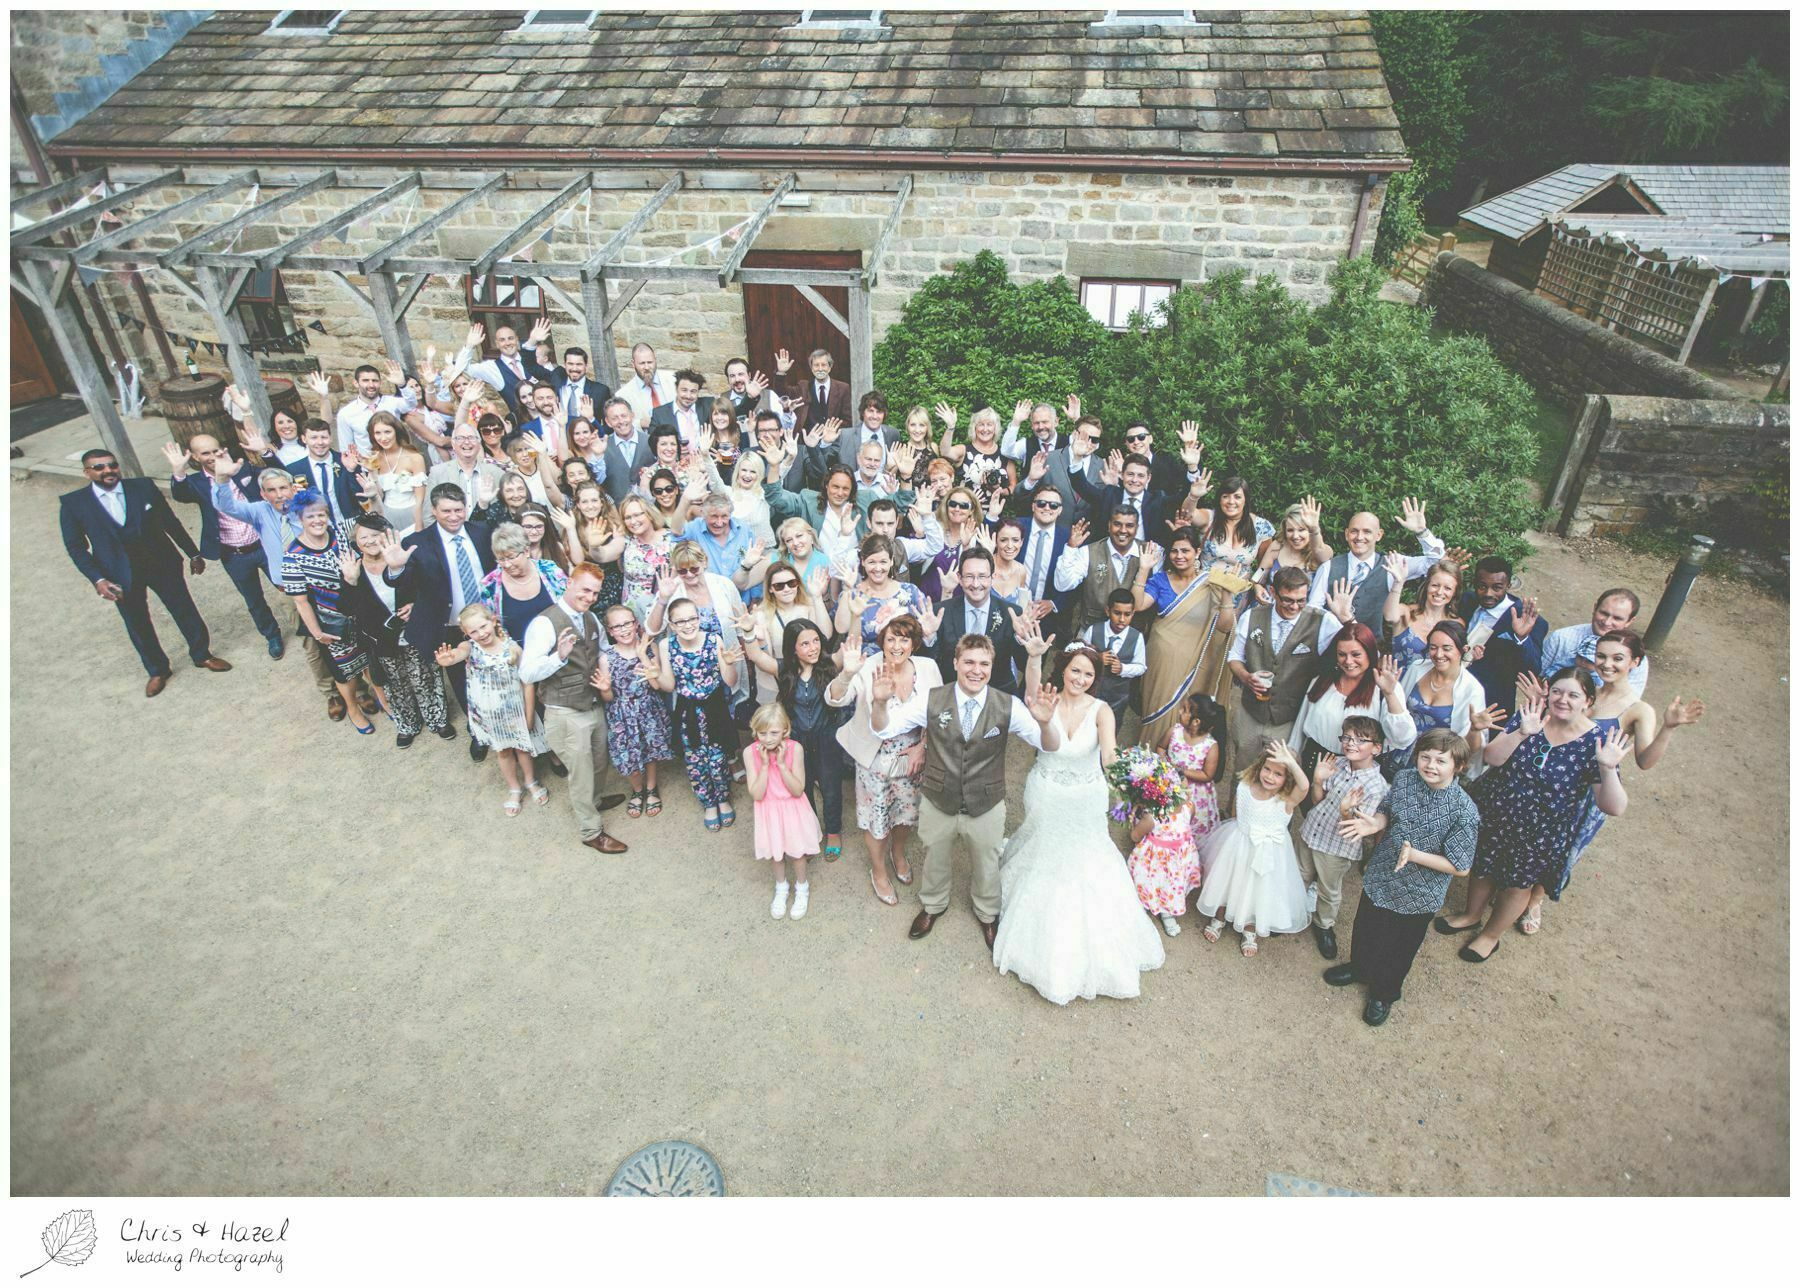 whole wedding party group shot, eco wedding, wedding, Eccup Wedding Photographer, Lineham Farm, Wedding Photography Leeds, Chris and Hazel Wedding Photography, Richard Wyatt, Laura Kelly